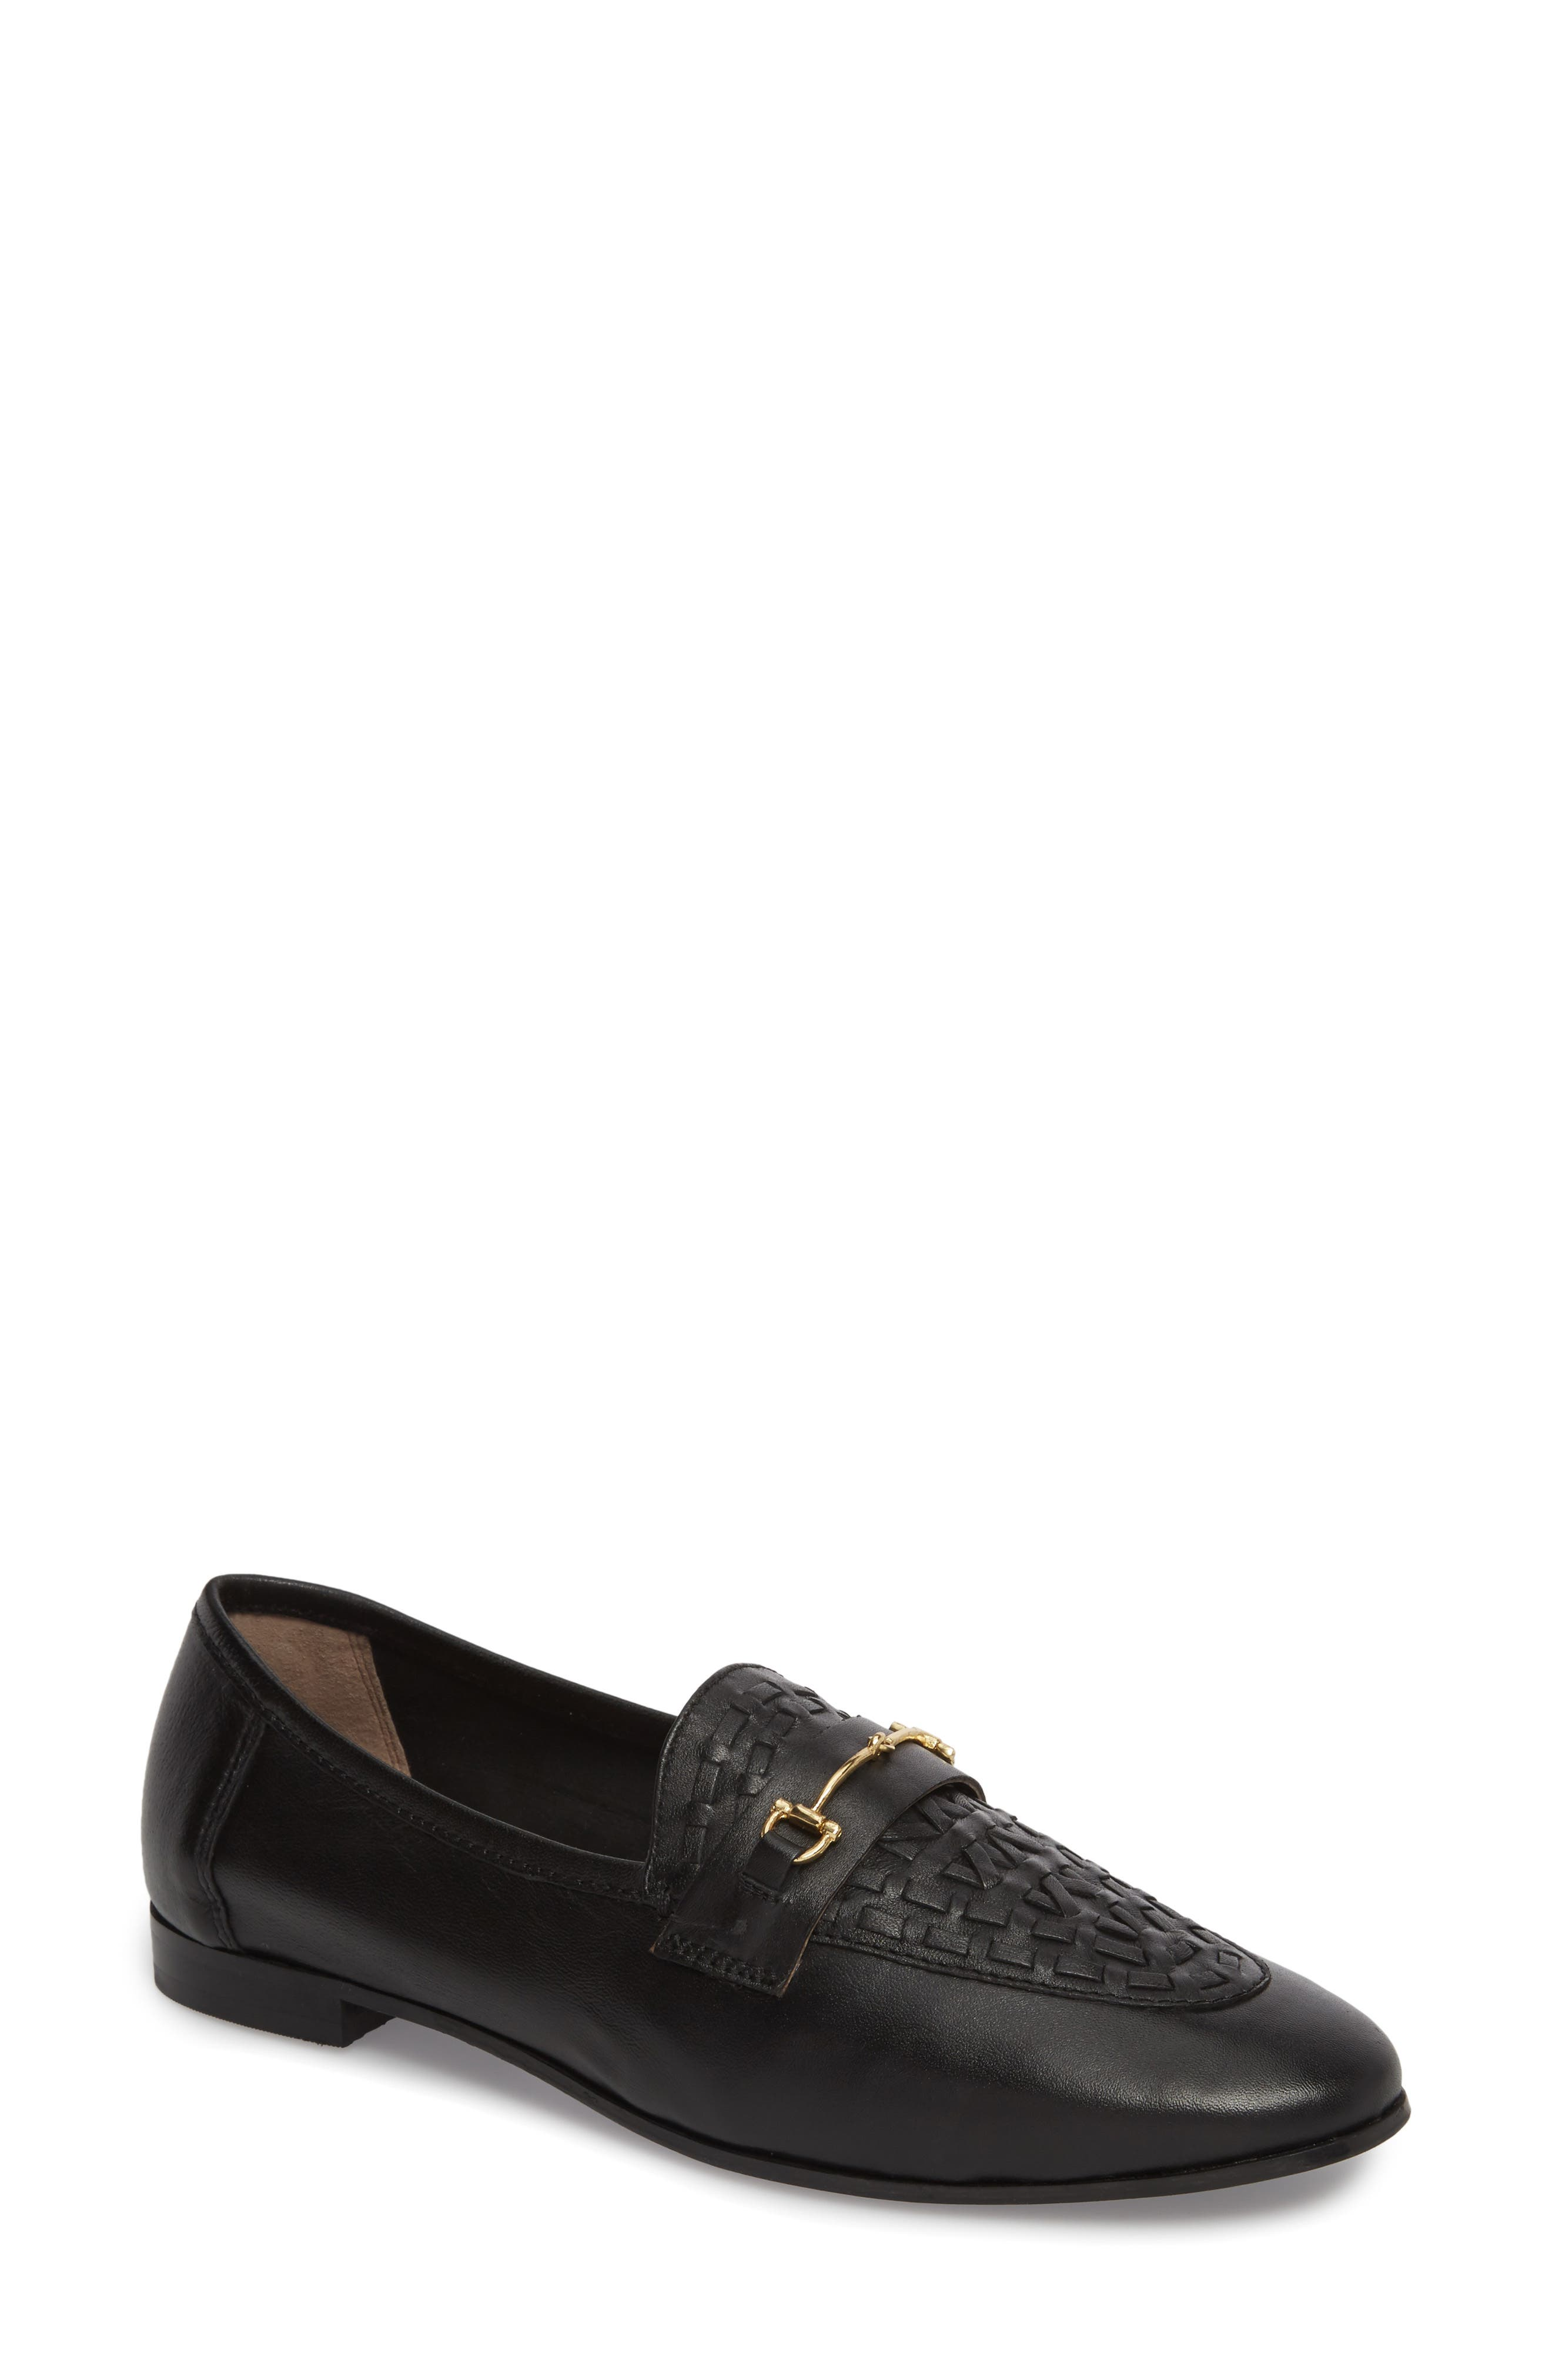 Kingley Woven Loafer,                         Main,                         color, 001